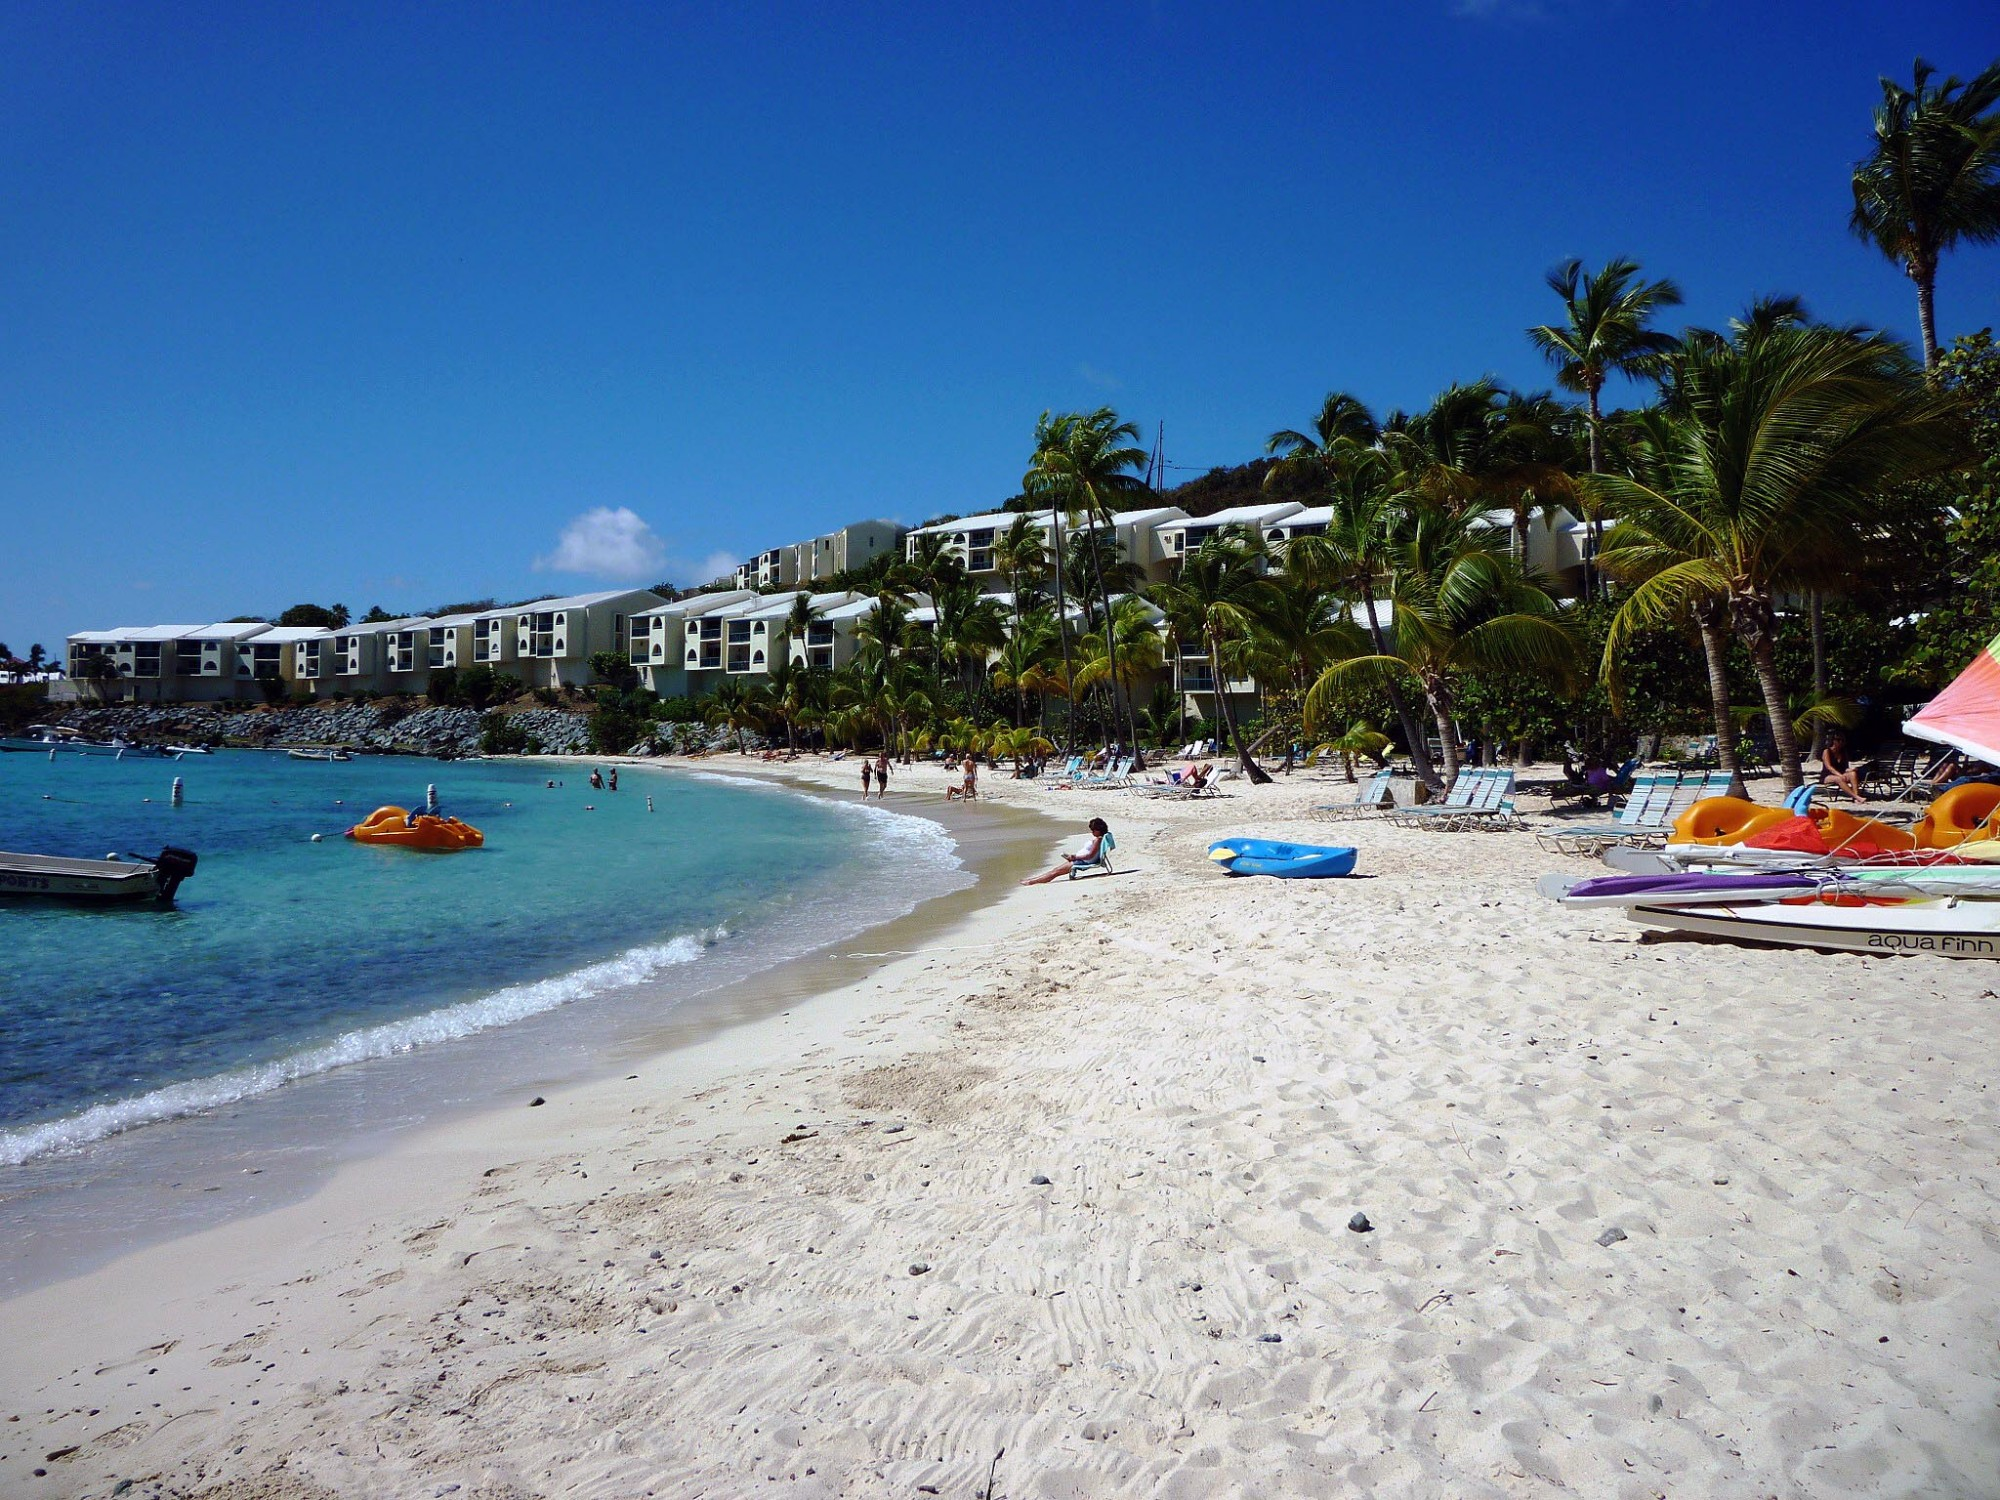 Cowpet Bay West Is A 102 Unit Complex Leeward Way Located On The Hillside And Windward Water Beach At